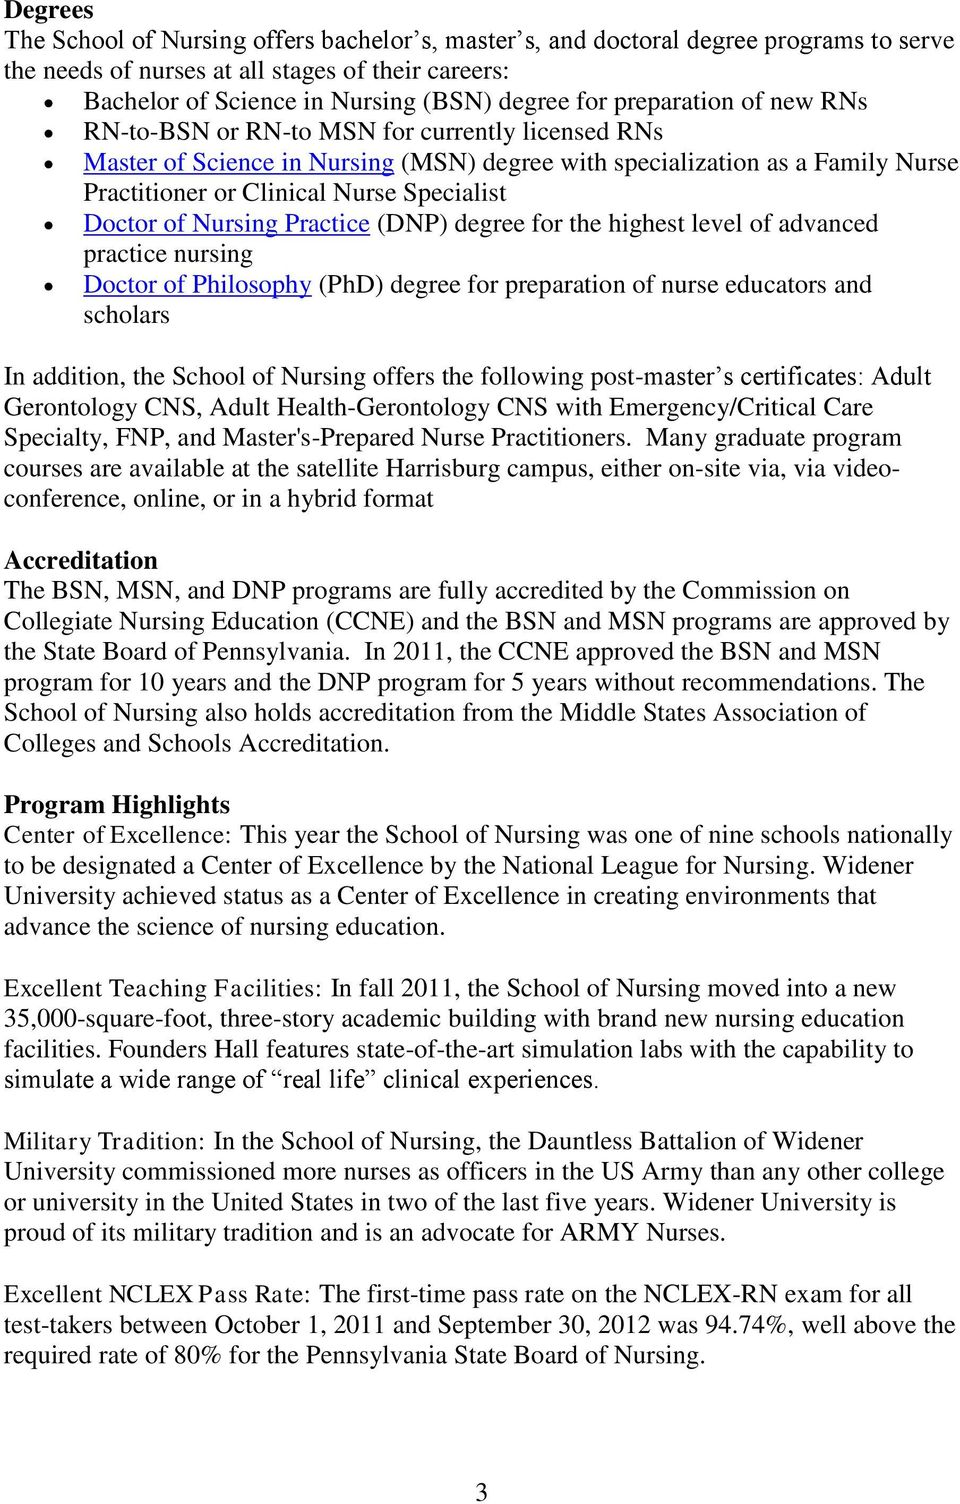 Doctor of Nursing Practice (DNP) degree for the highest level of advanced practice nursing Doctor of Philosophy (PhD) degree for preparation of nurse educators and scholars In addition, the School of